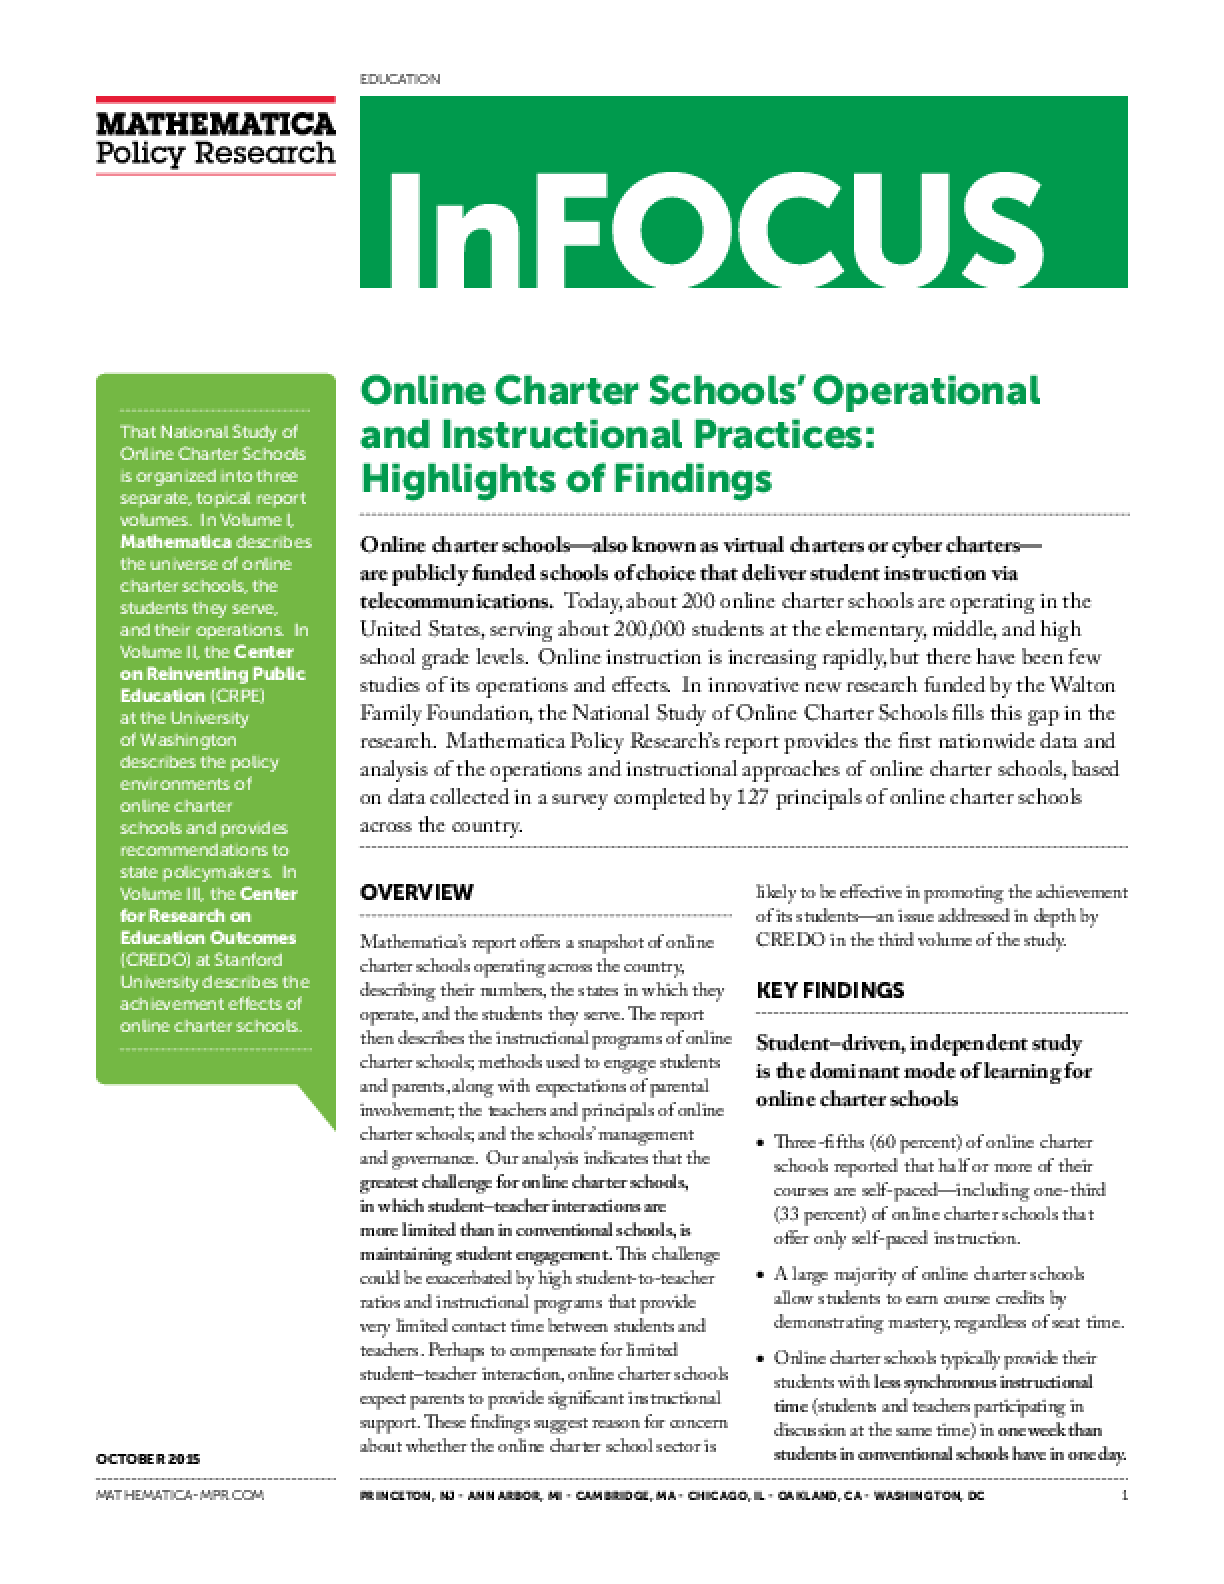 Online Charter Schools' Operational and Instructional Practices: Highlights of Findings